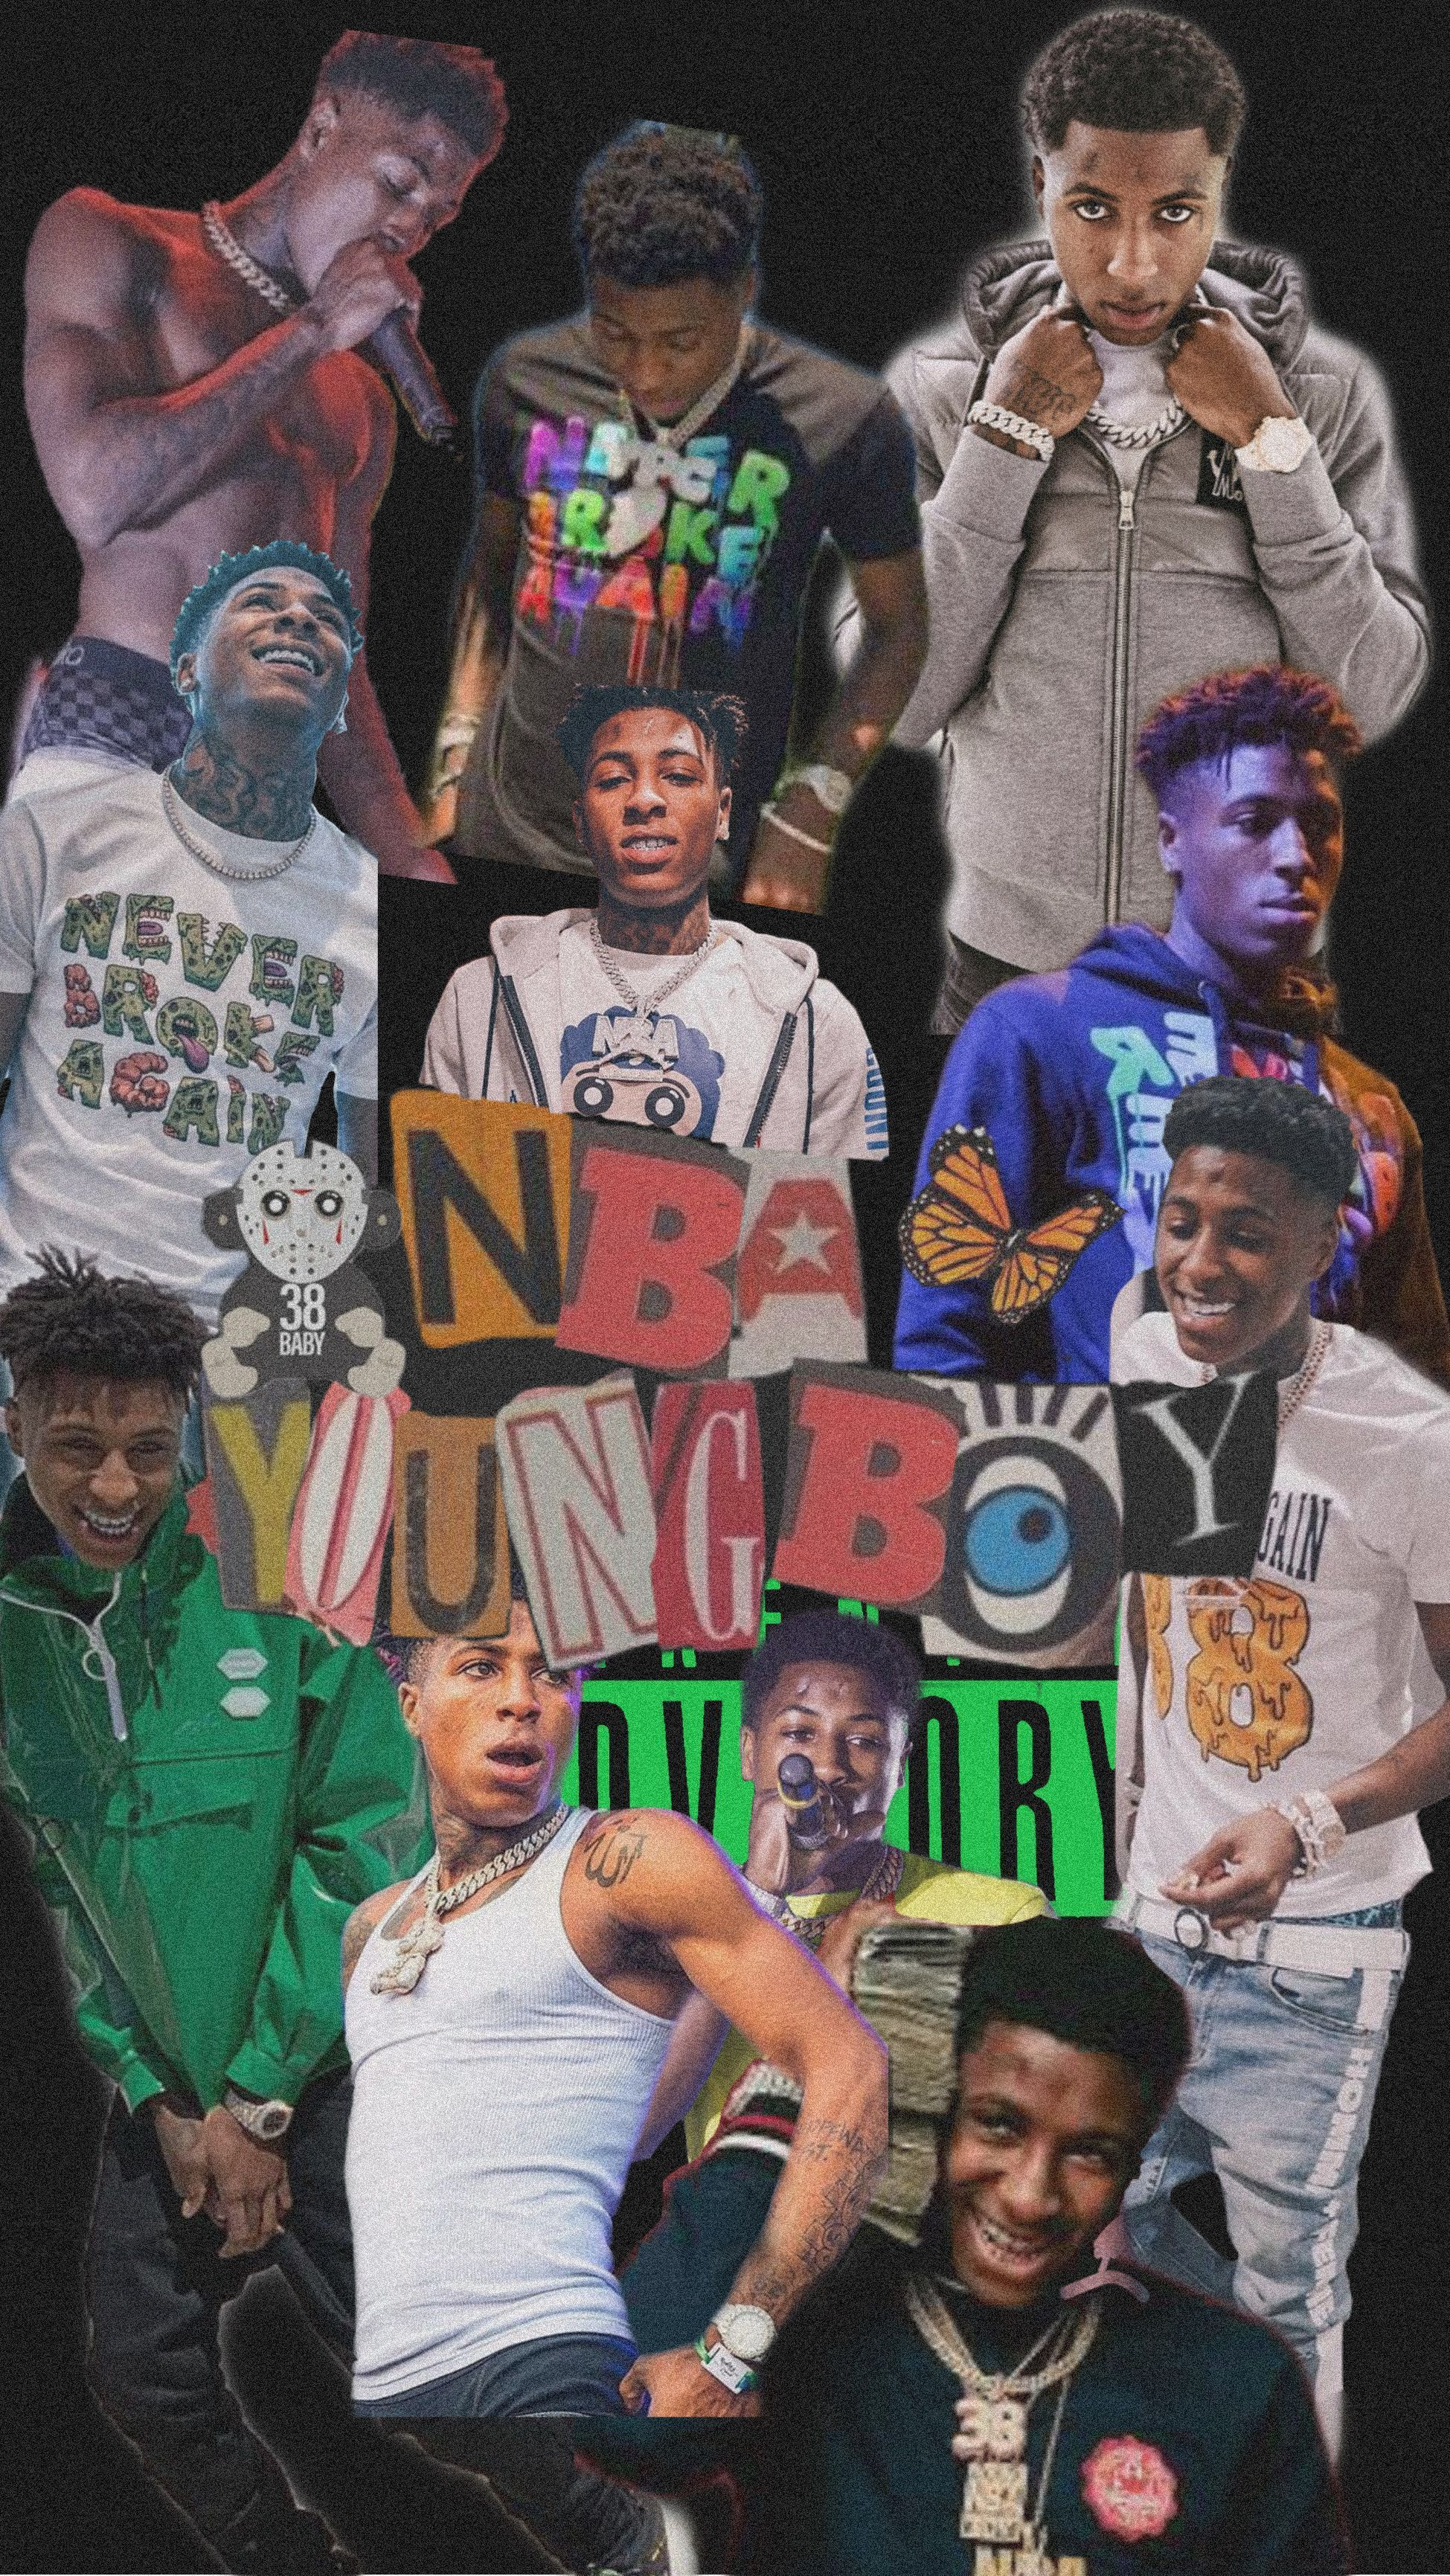 Nba Youngboy In 2020 Rapper Wallpaper Iphone Cartoon Wallpaper Iphone Rapper Art